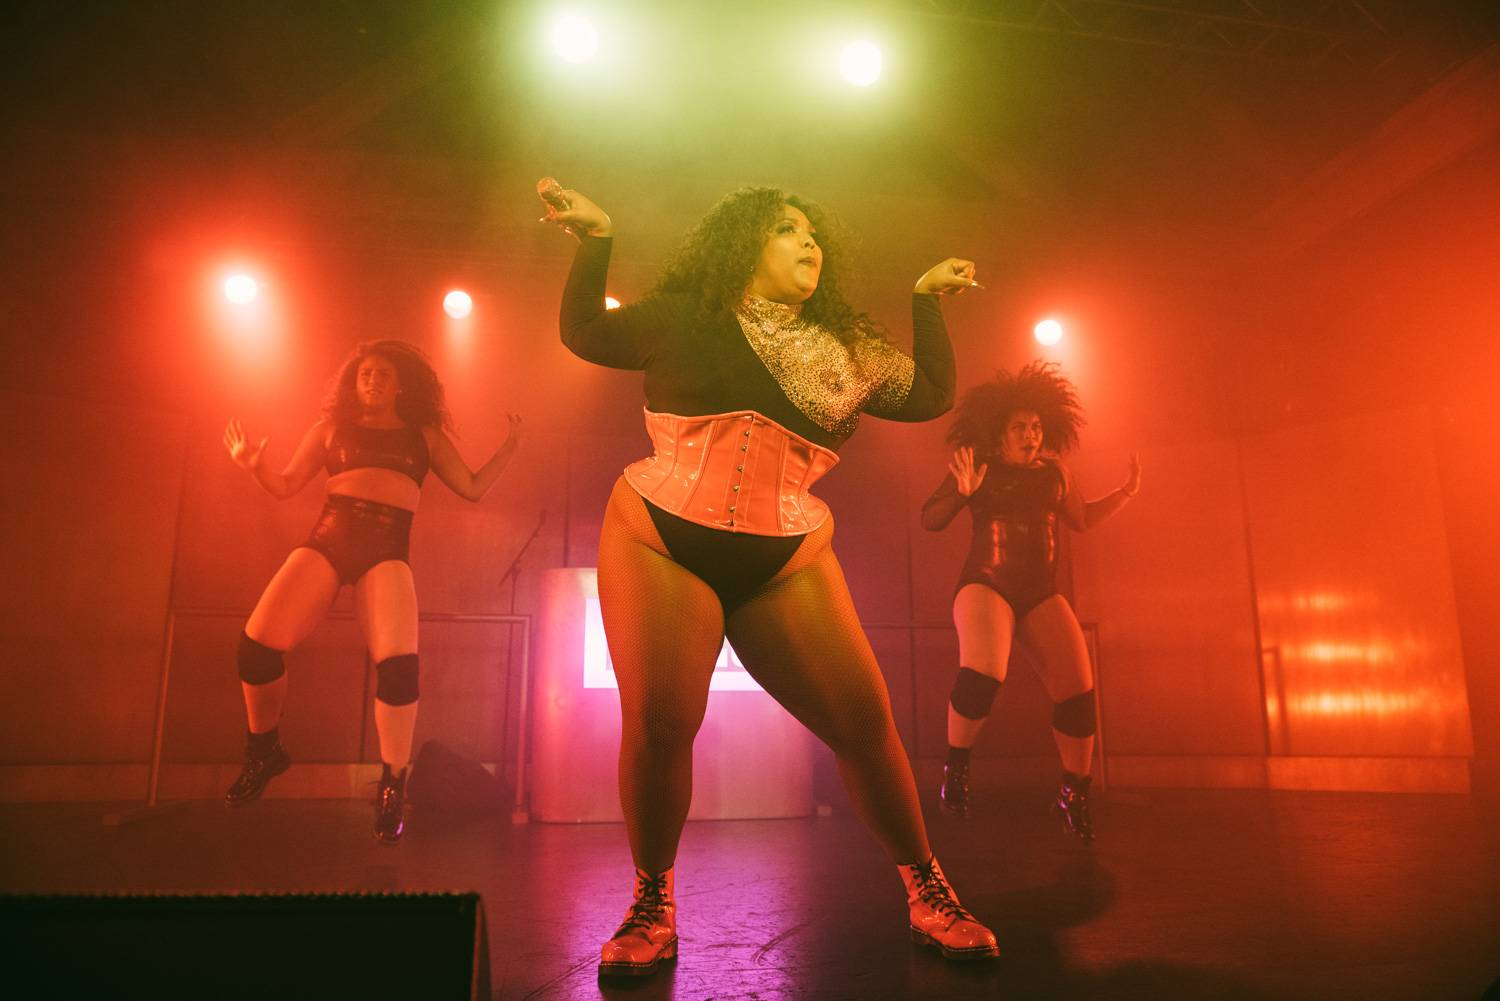 Lizzo at the Showbox SoDo, Apr 28 2019. Pavel Boiko photo.